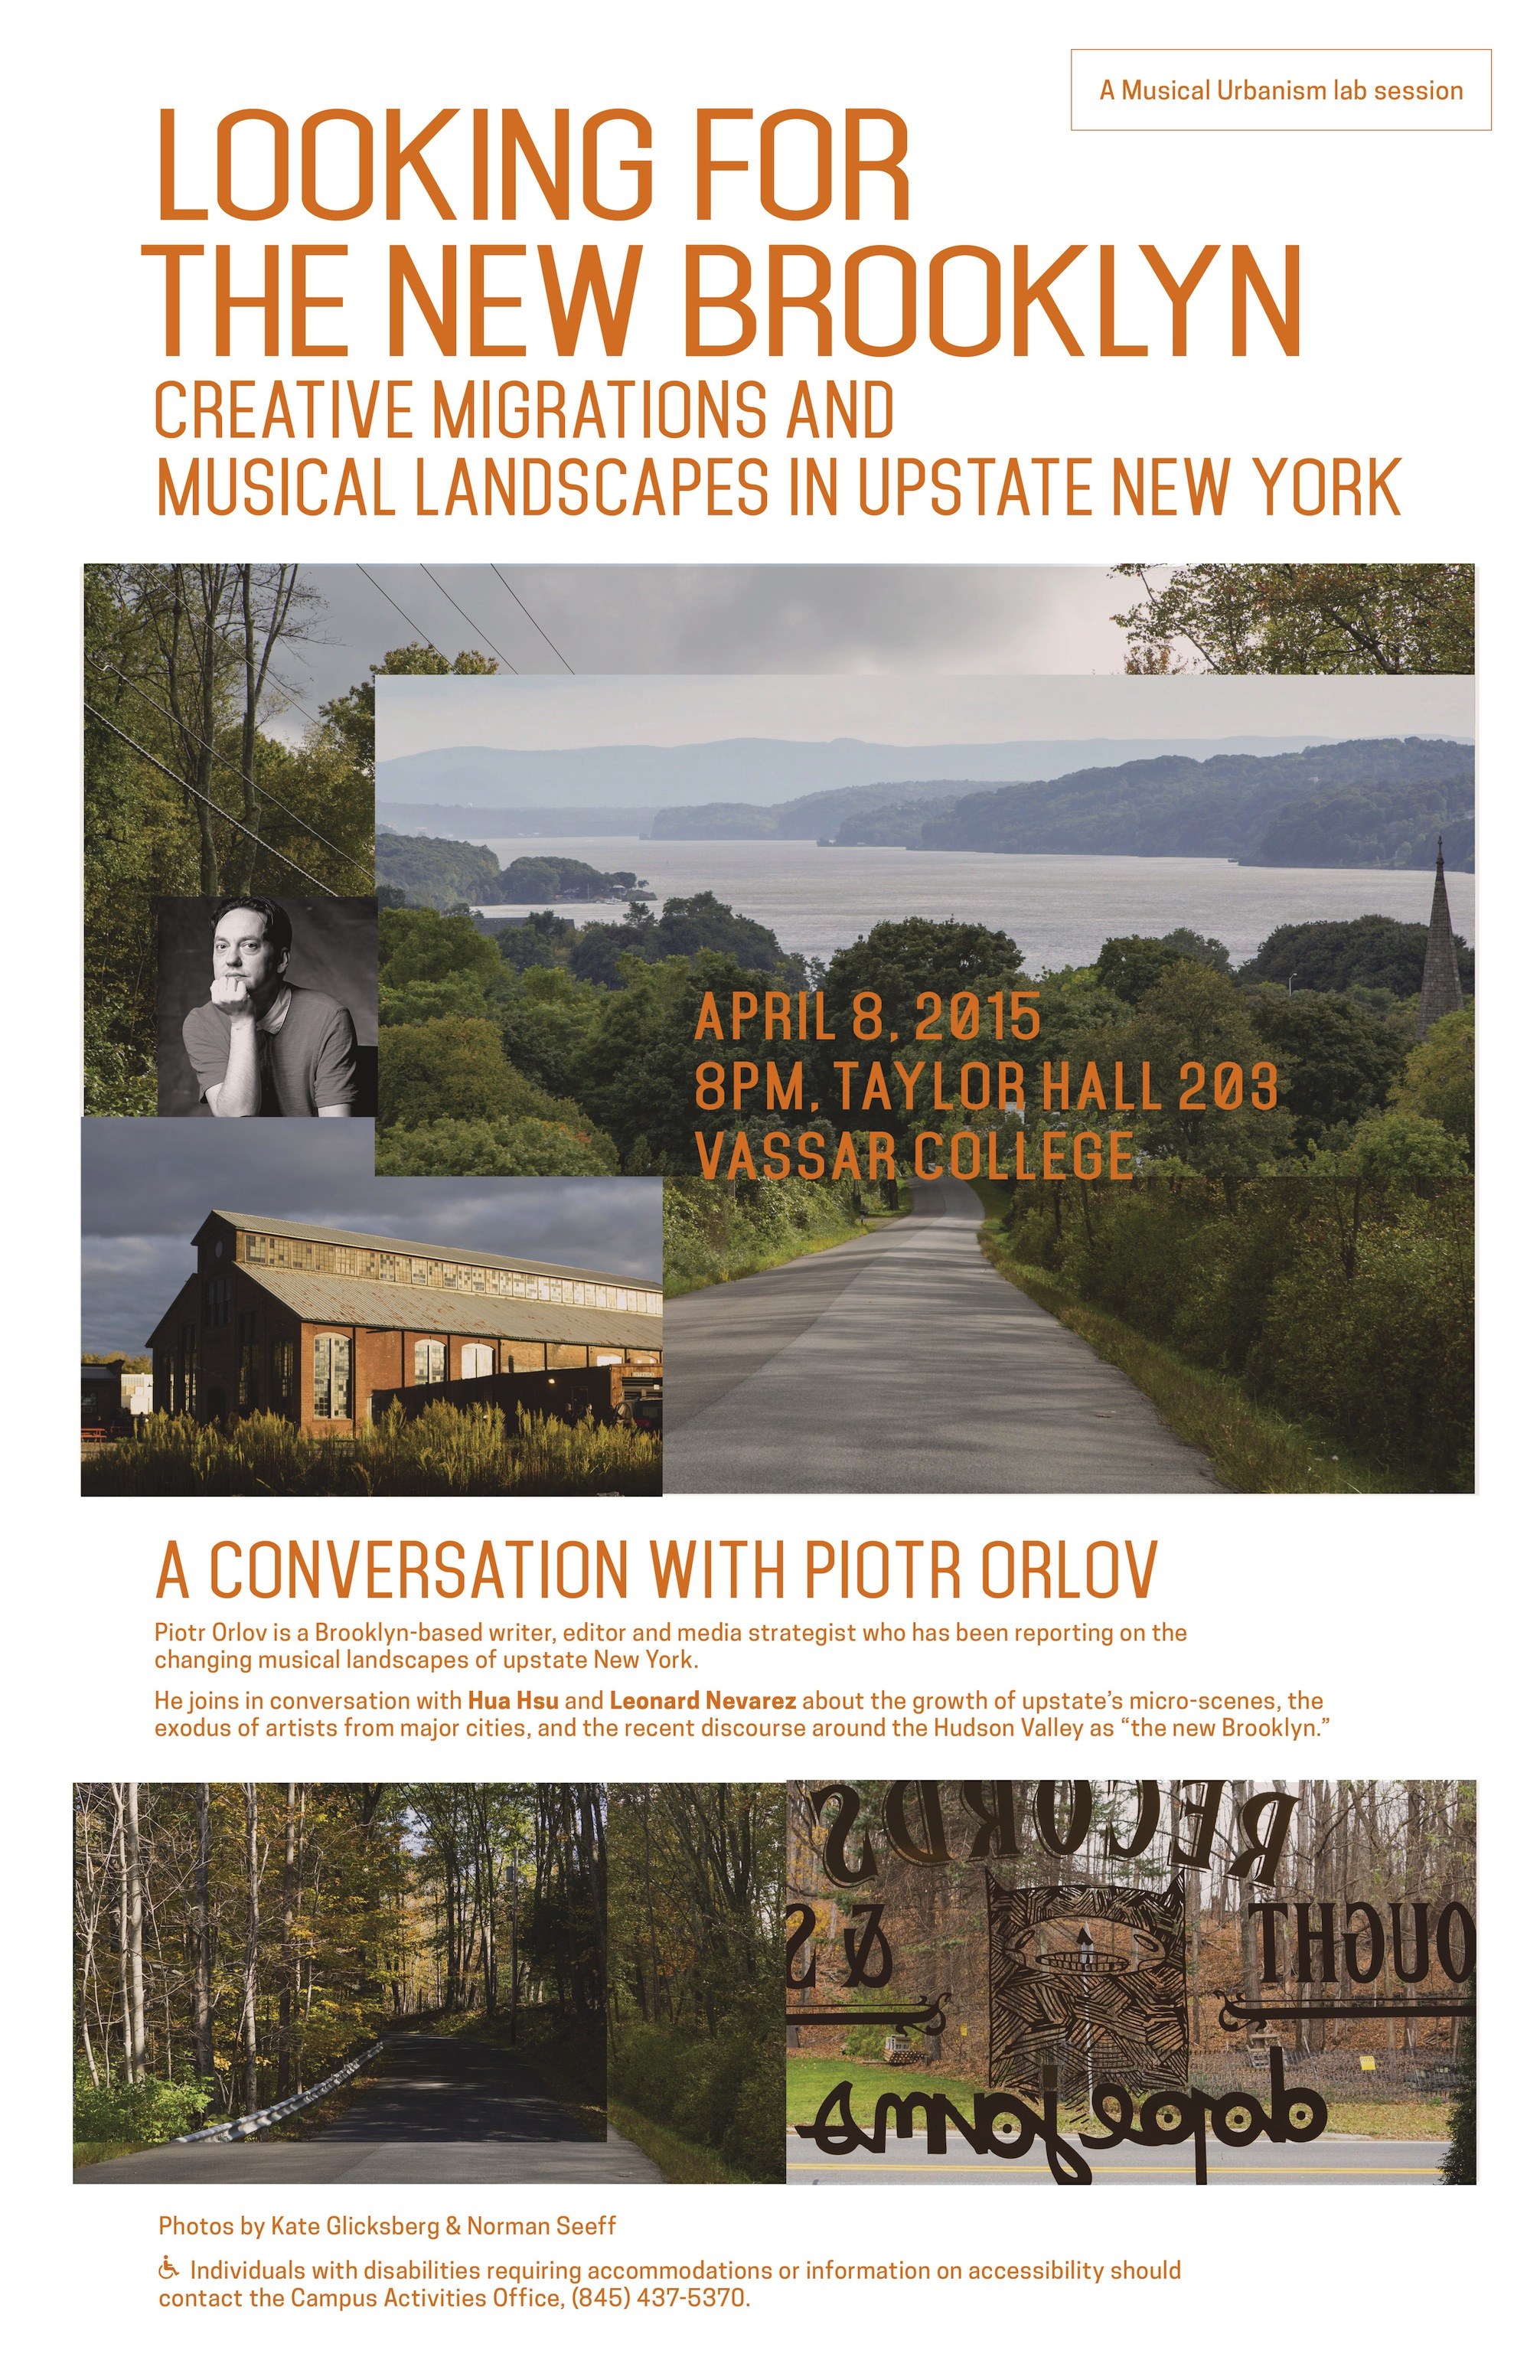 looking for the new Brooklyn: creative migrations & musical